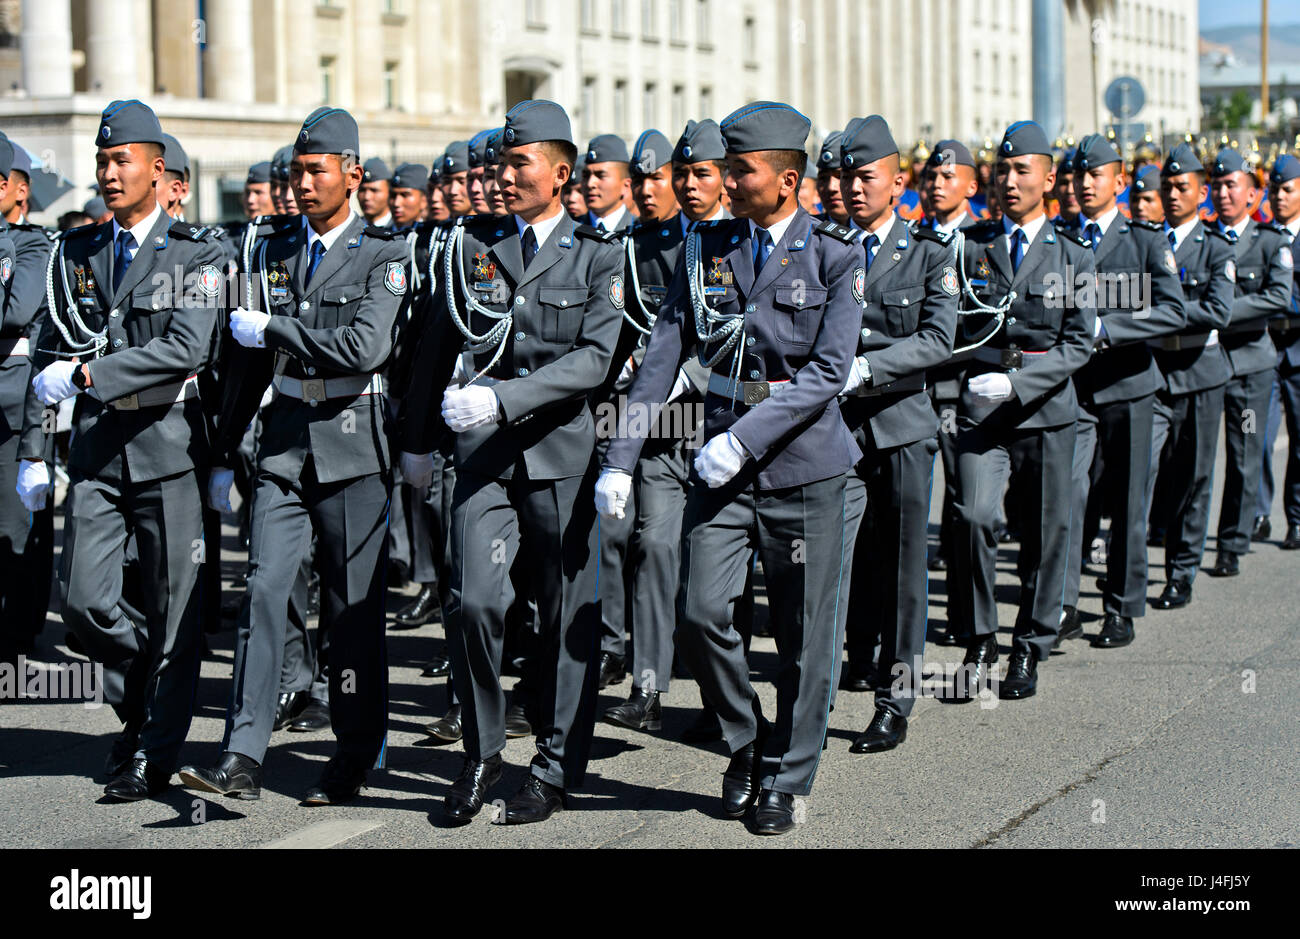 Military unit of the Mongolian armed forces at a parade, Ulaanbaatar, Mongolia - Stock Image